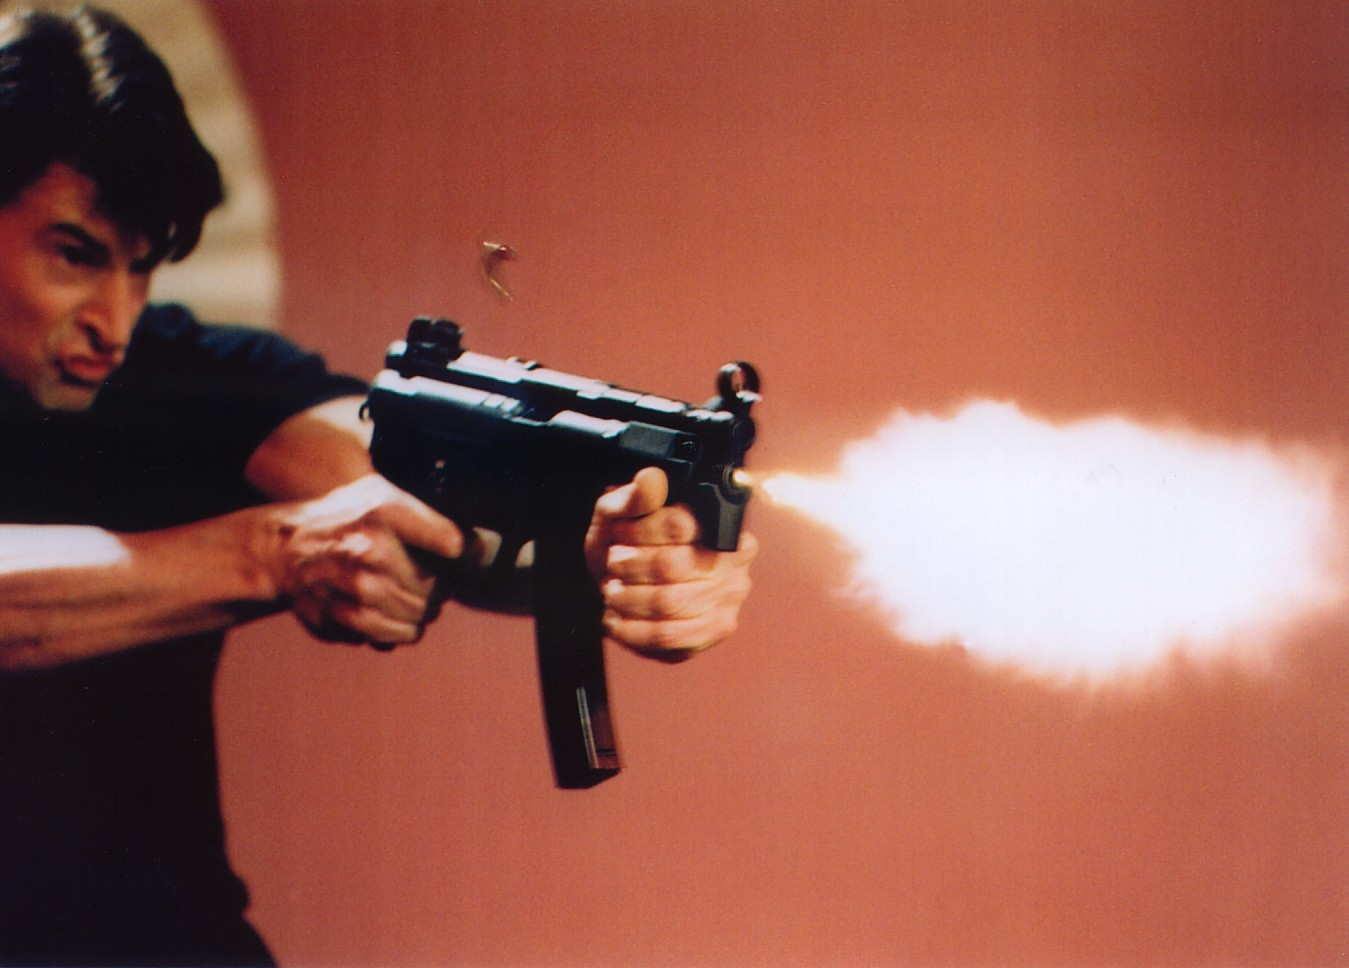 The flame from the 9mm Film Industry Blank in the MP5K can be clearly seen in this picture